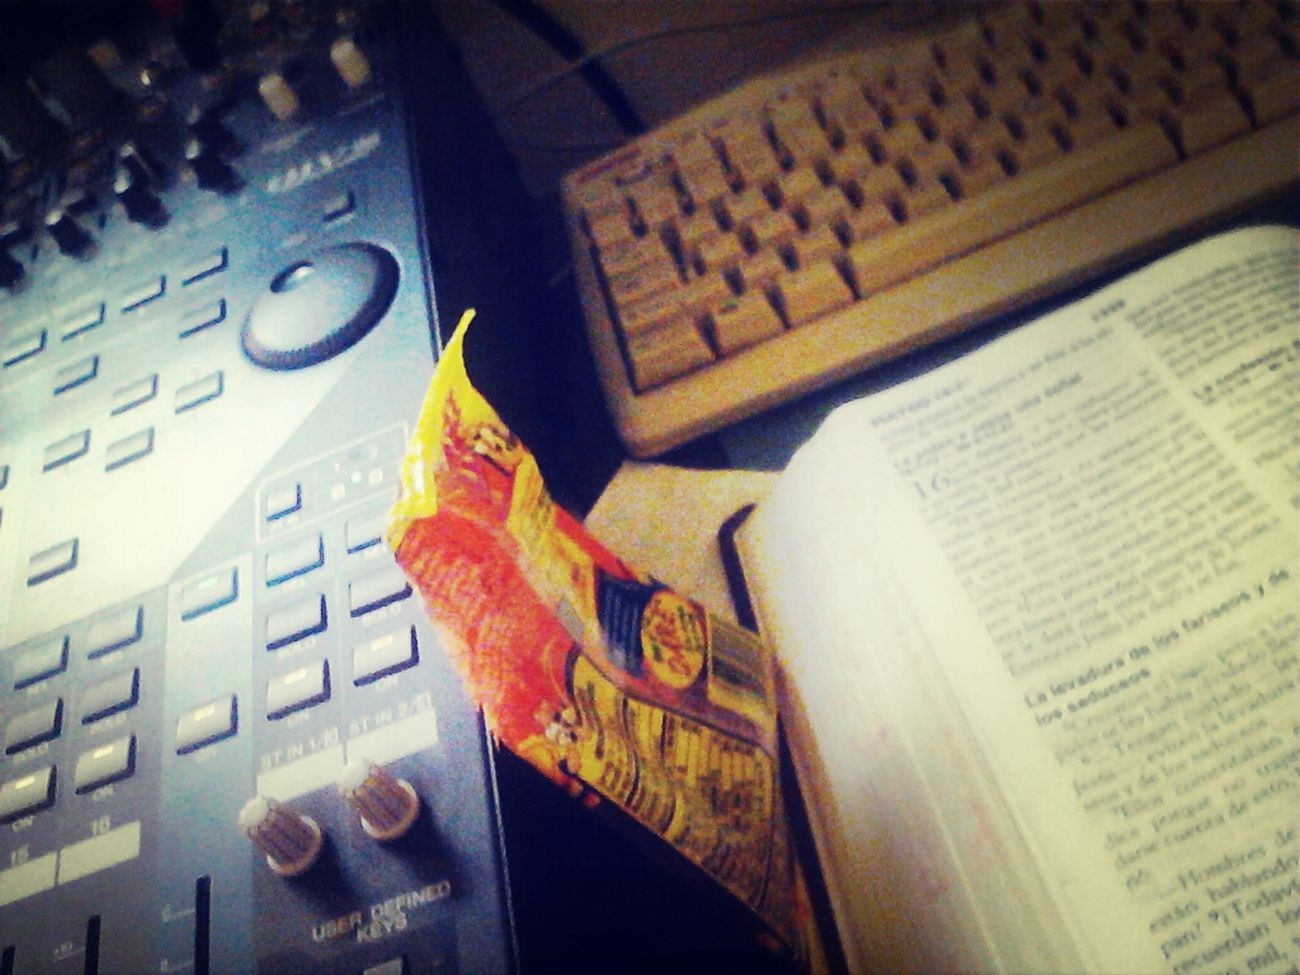 sound in the back of church, Bible, Candy candy candy lol